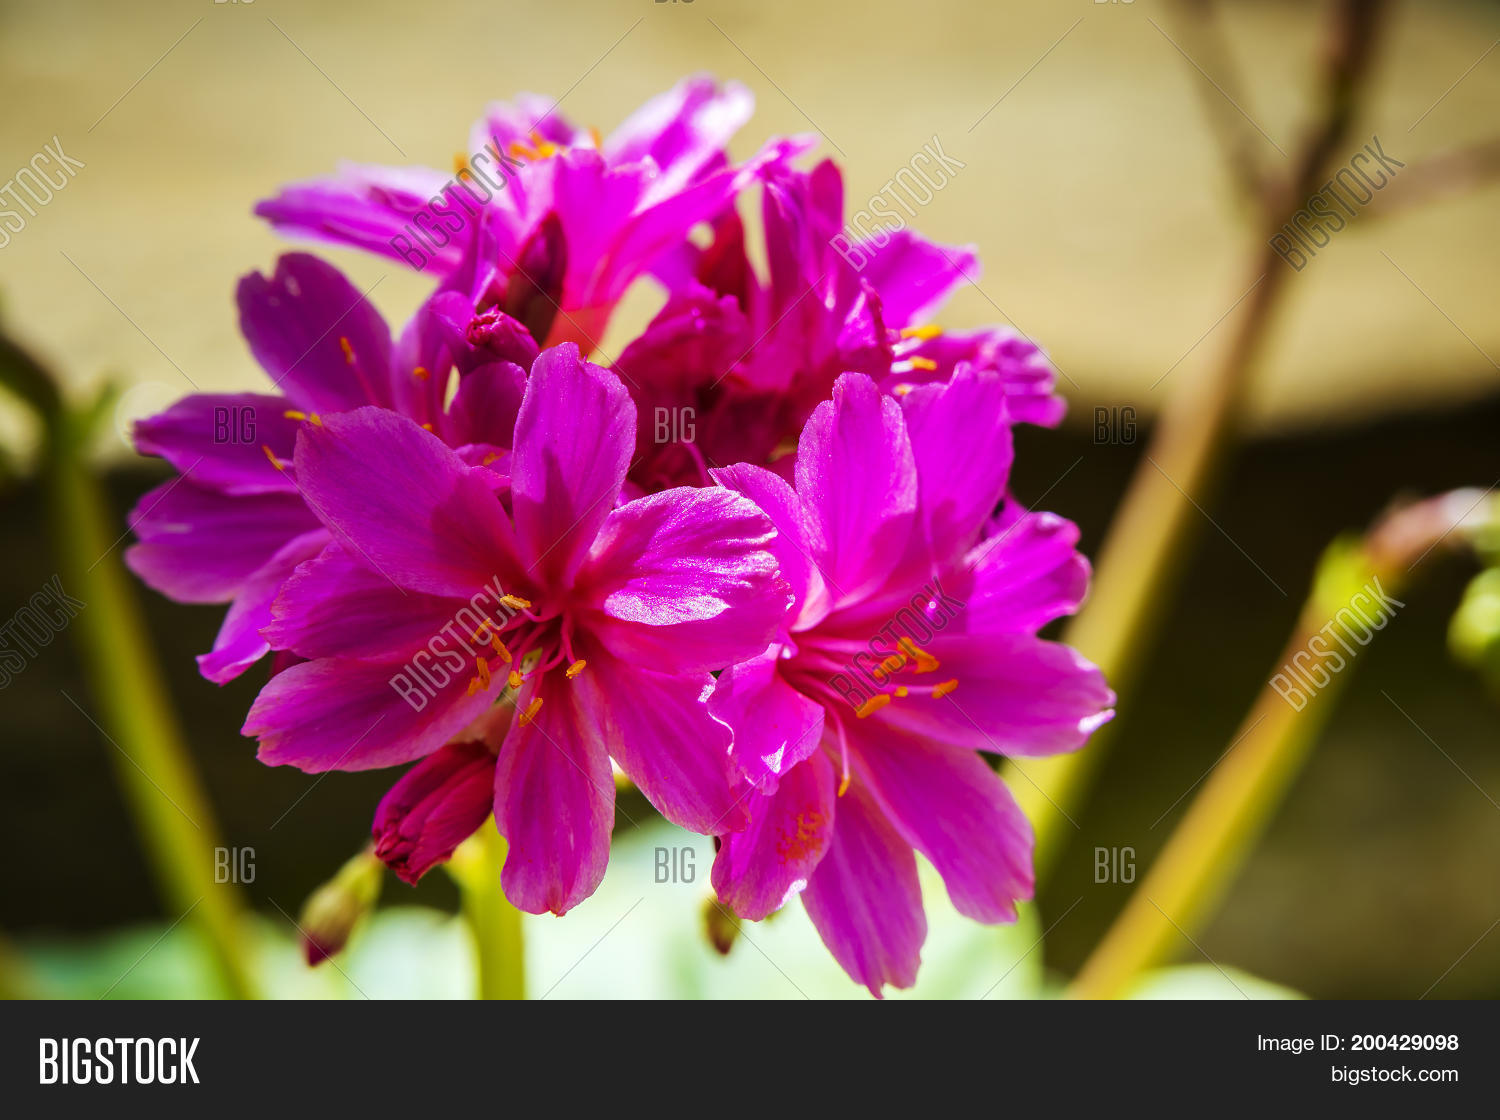 Small Pink Flowers Image Photo Free Trial Bigstock